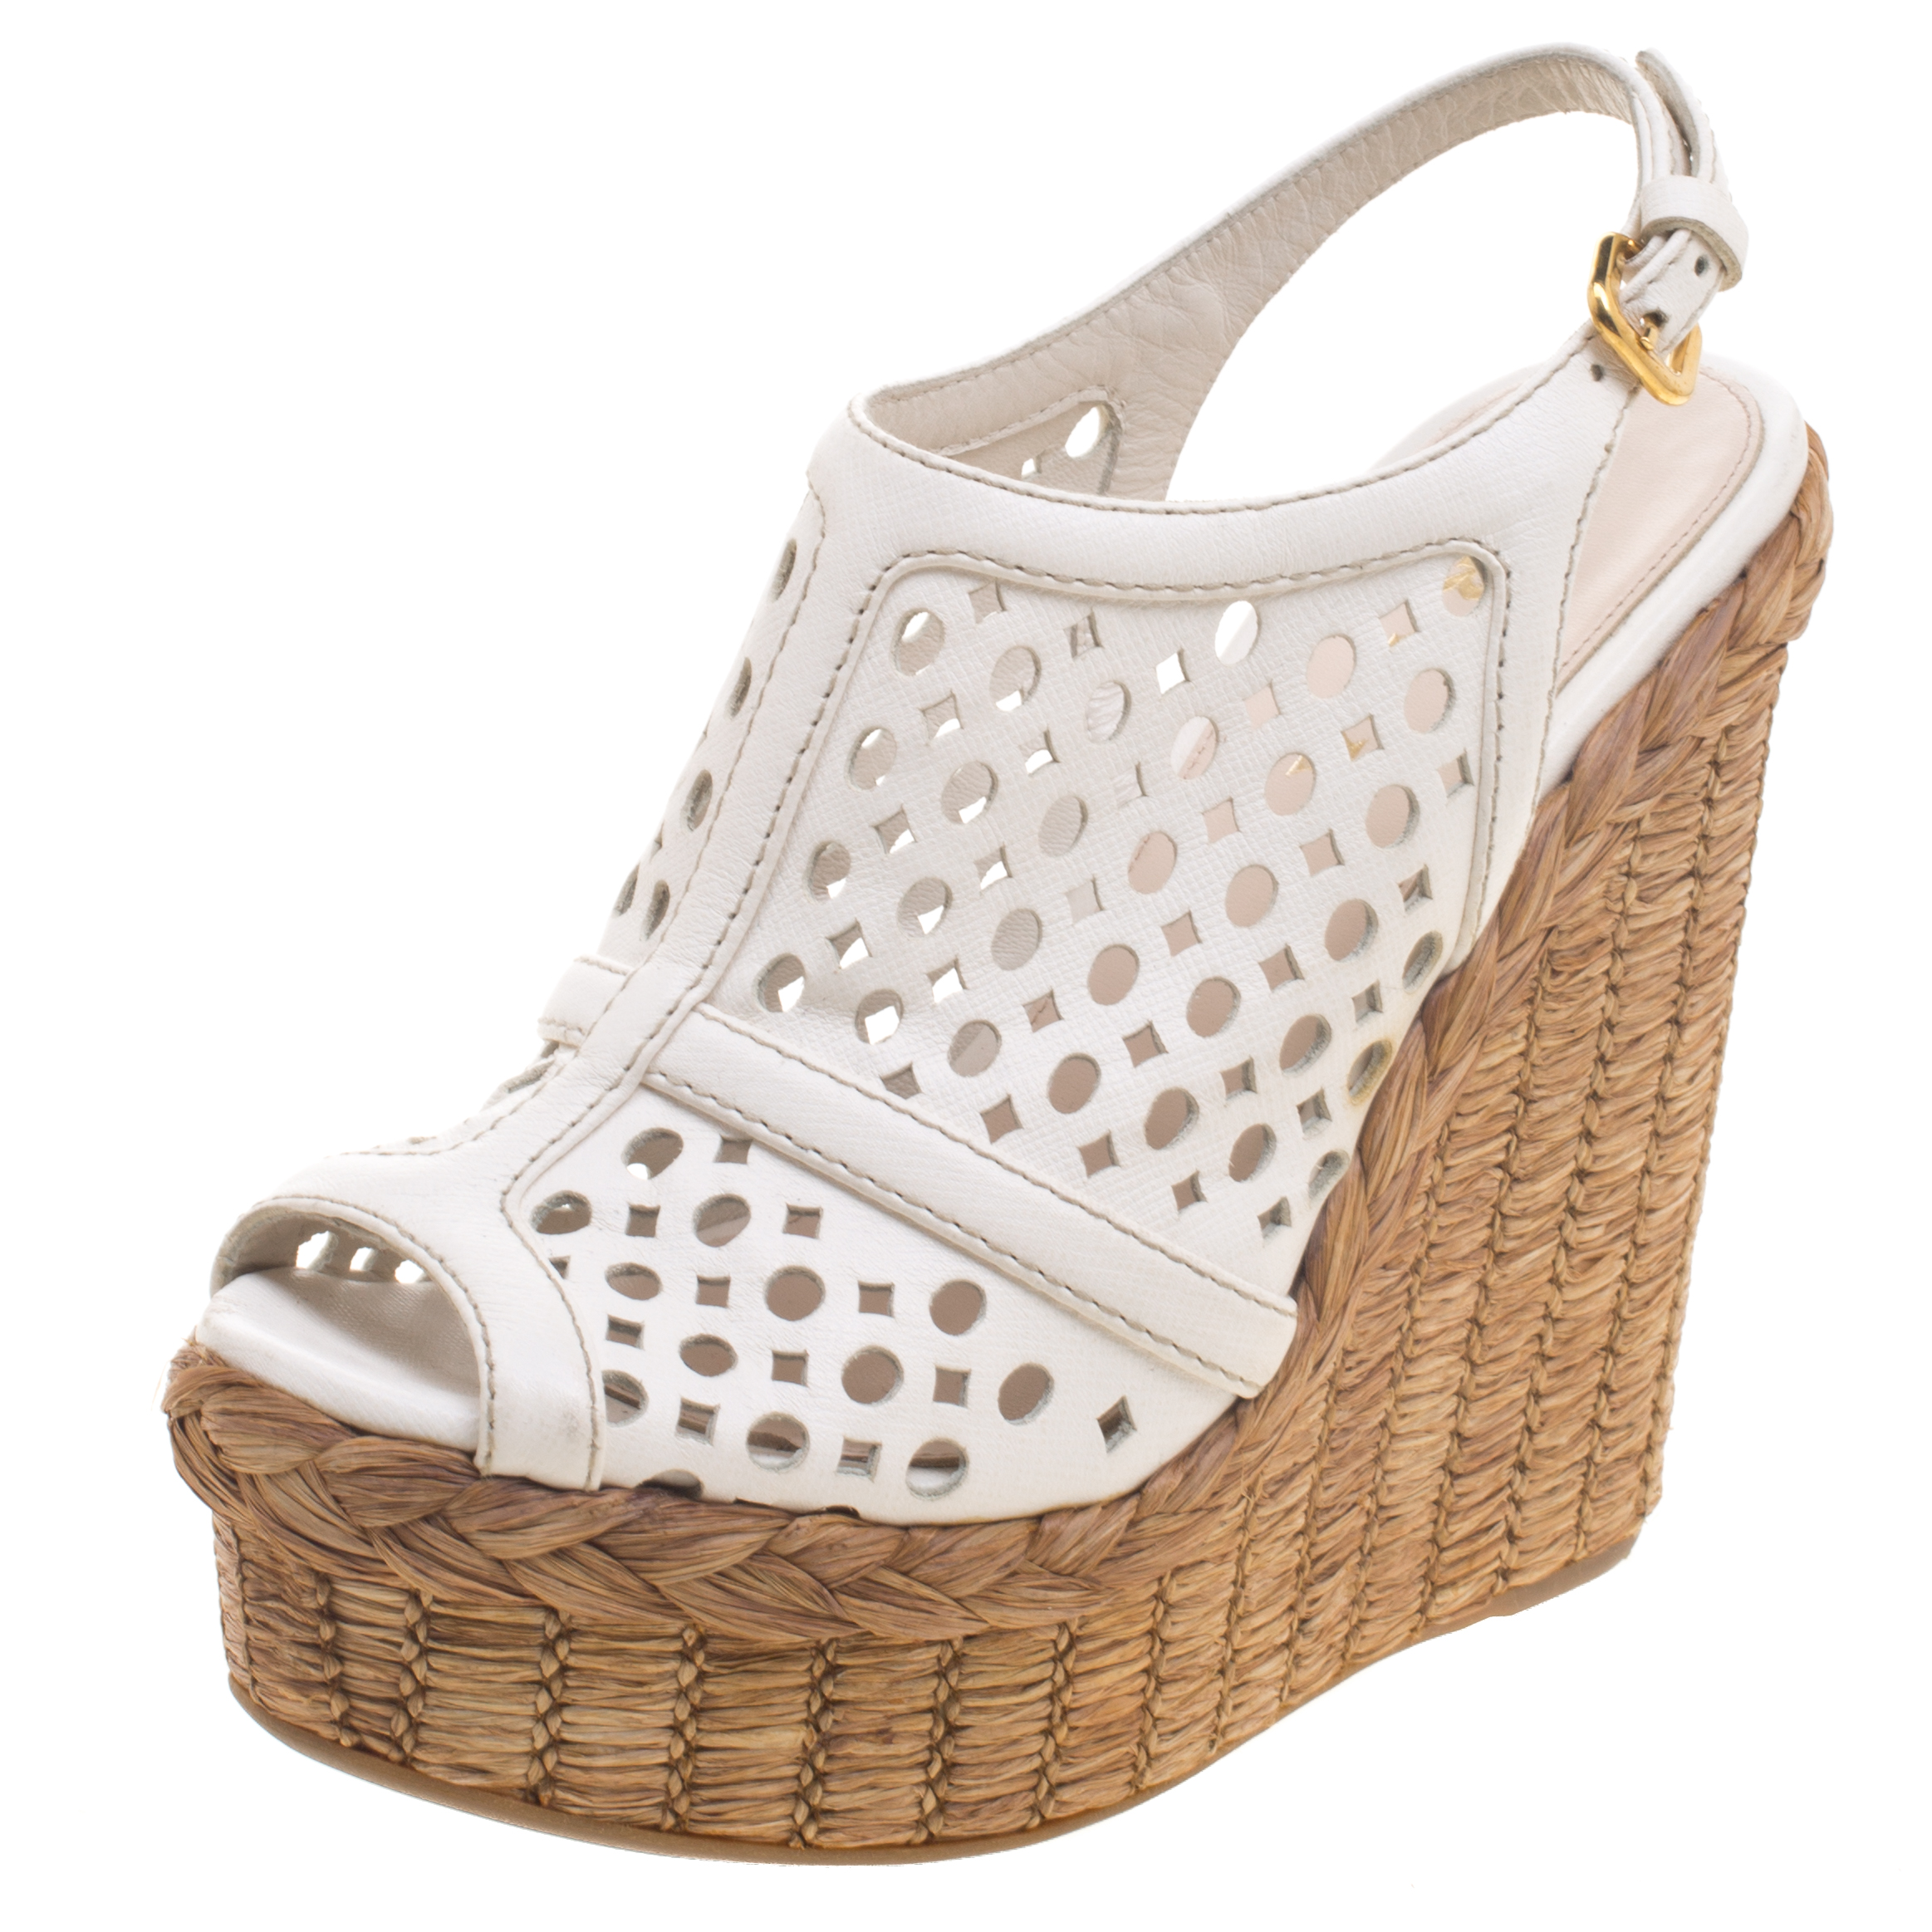 cd517f07893 ... Prada White Cutout Leather Platform Raffia Wedge Sandals Size 36.  nextprev. prevnext